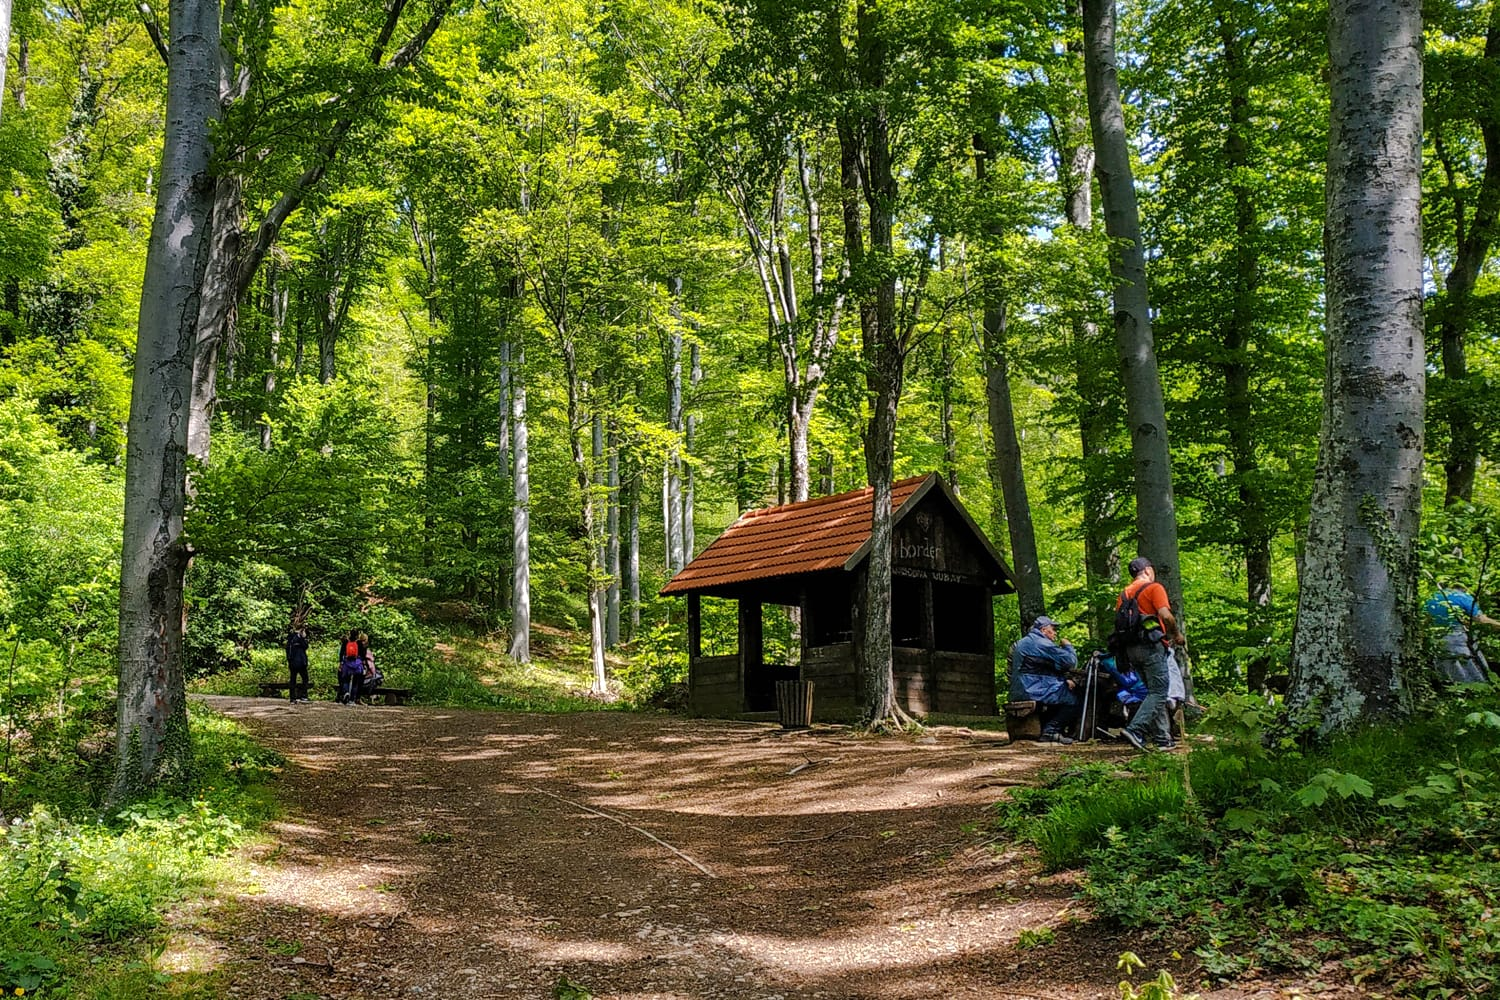 House/hut for resting on a hiking/walking forest road to Sljeme/Medvednica near Zagreb in Croatia